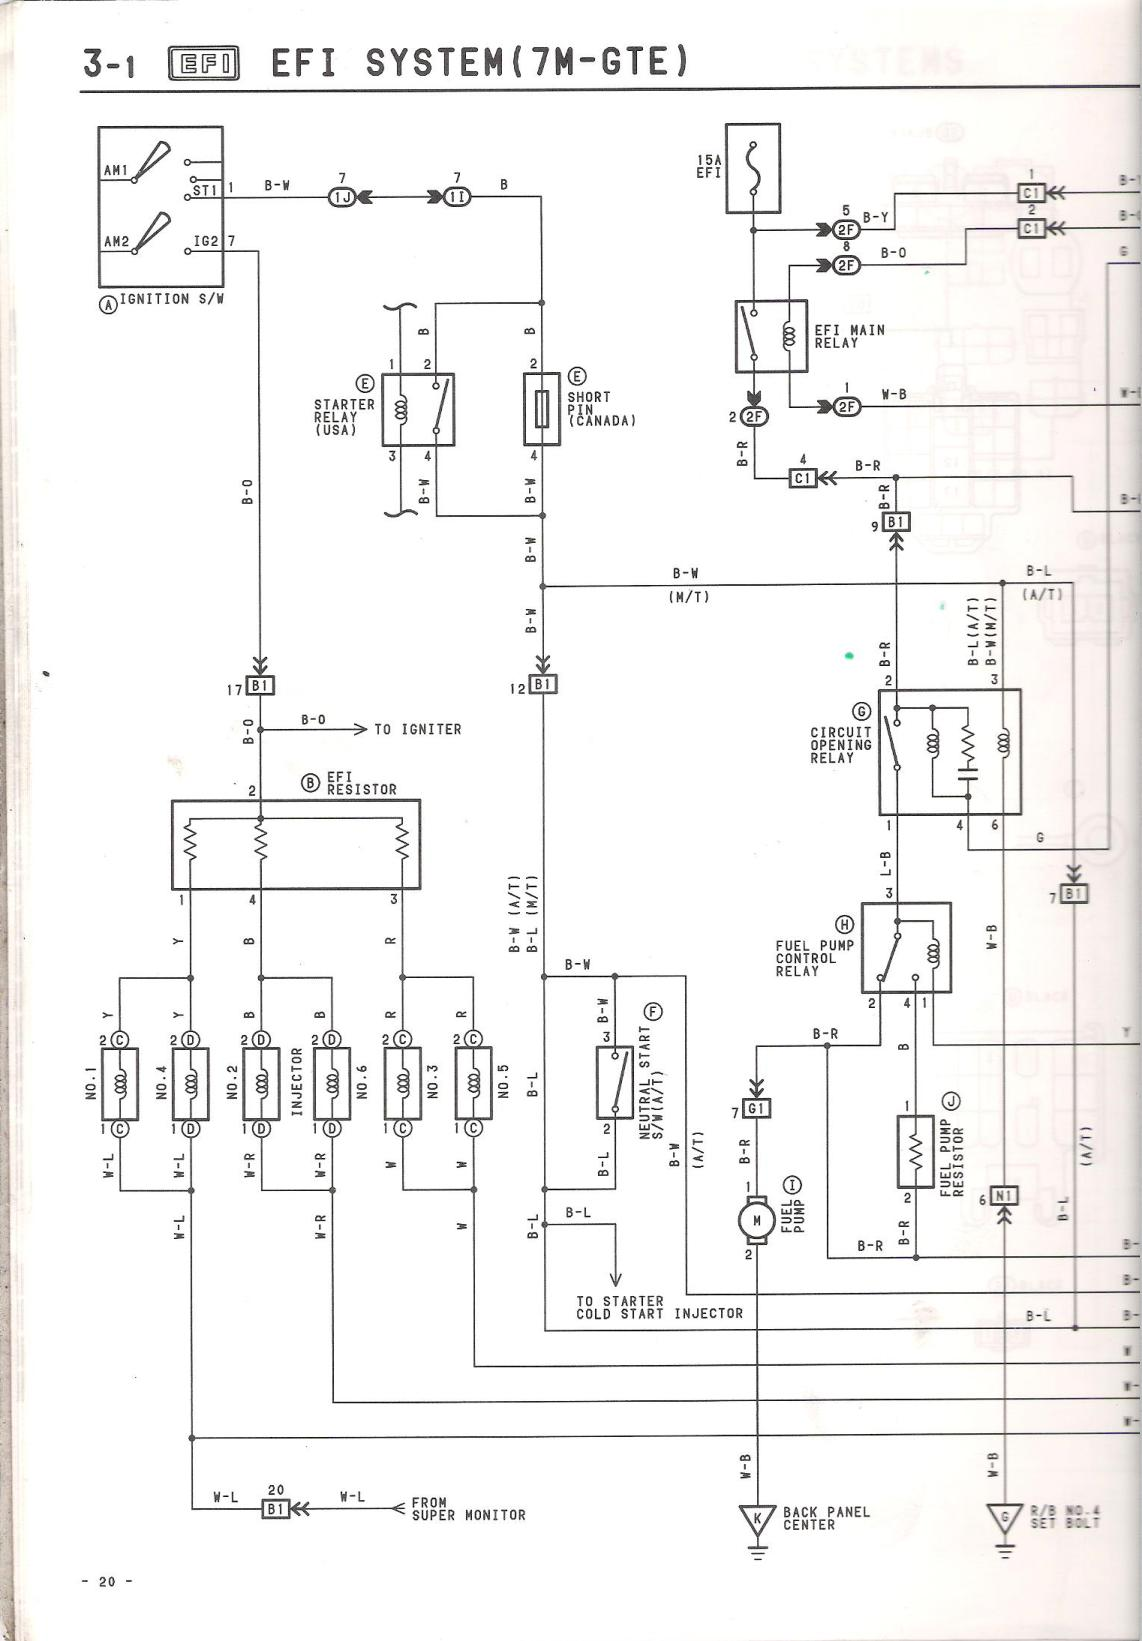 Engine Wiring Diagram For An 88 Mkiii Does This Exist